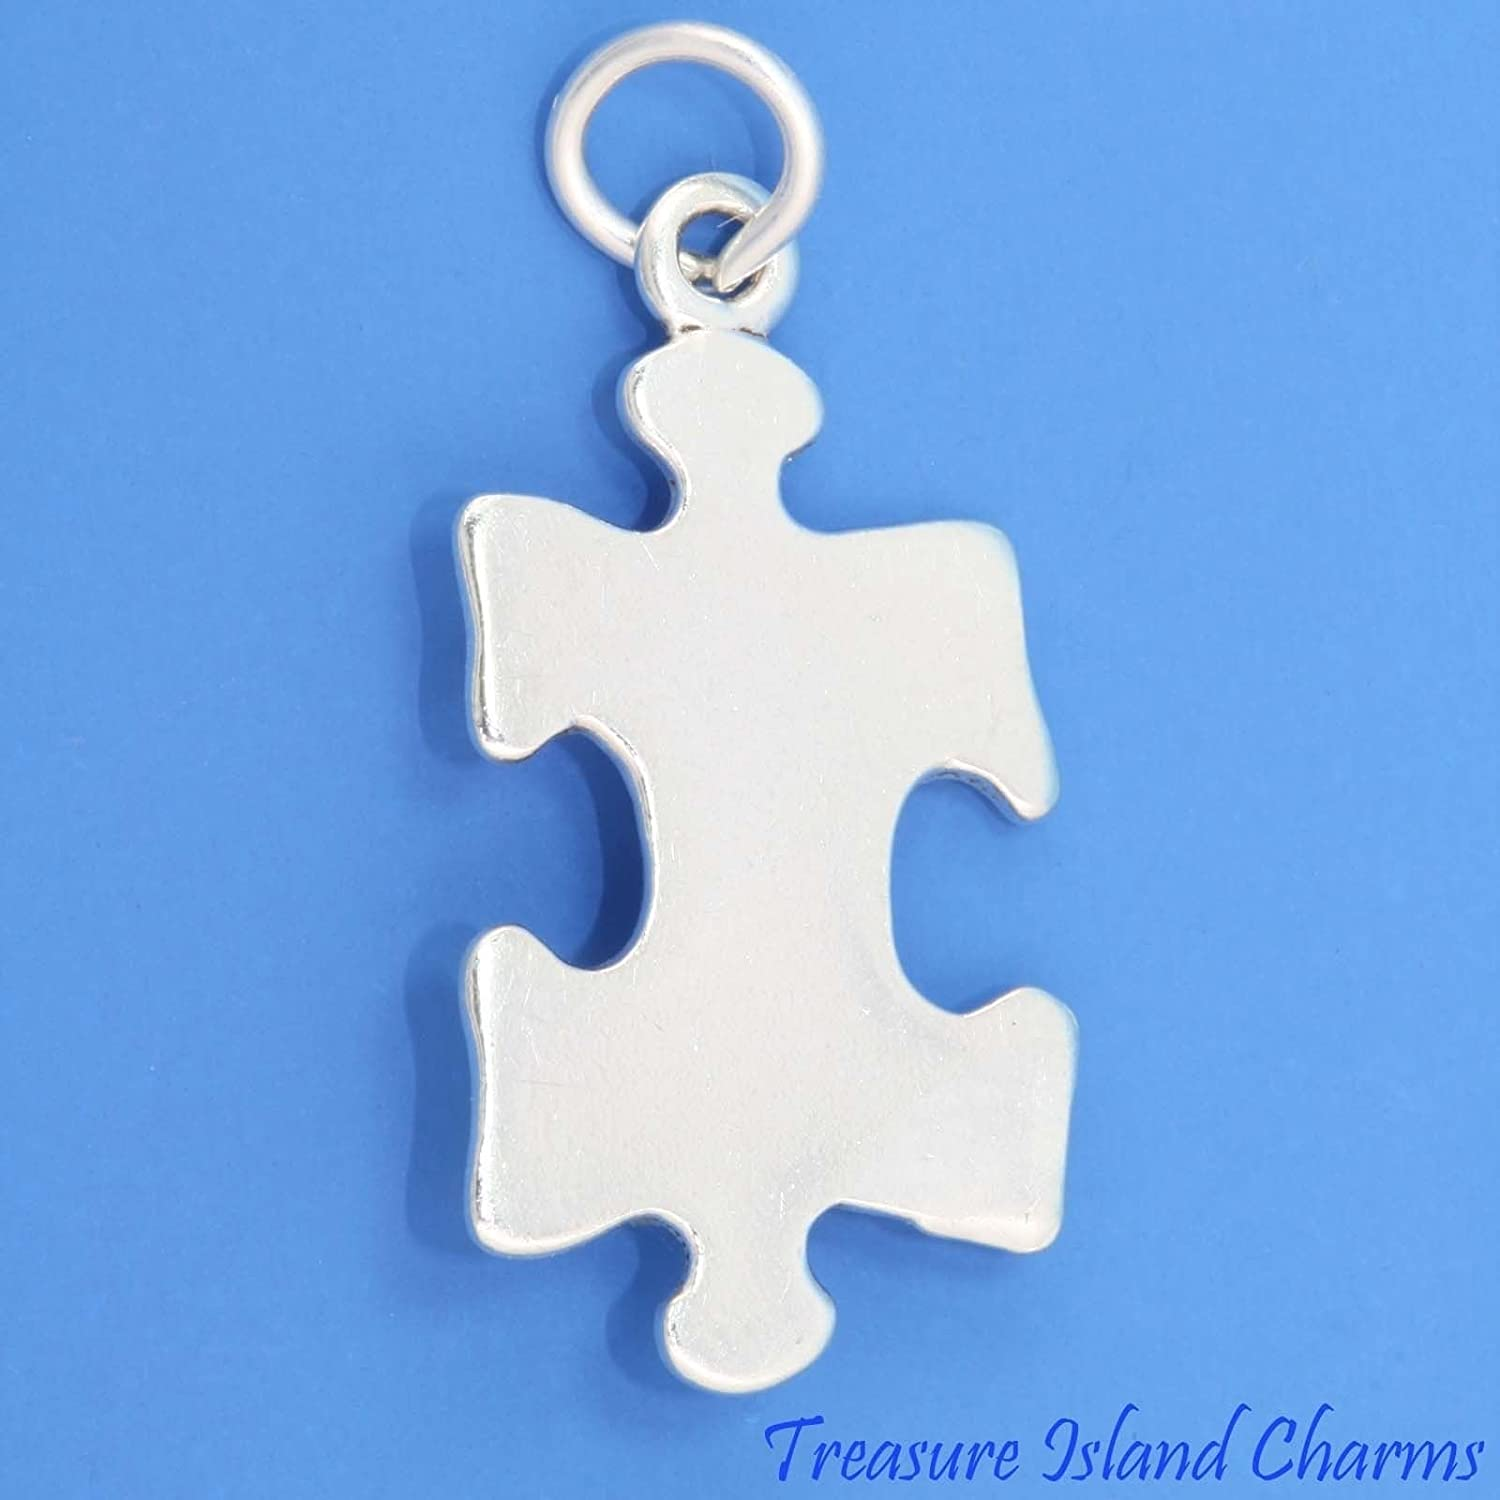 Jigsaw Puzzle Piece Autism Symbol .925 Sterling Silver Charm Pendant Made in USA Jewelry Making Supply Pendant Bracelet DIY Crafting by Wholesale Charms